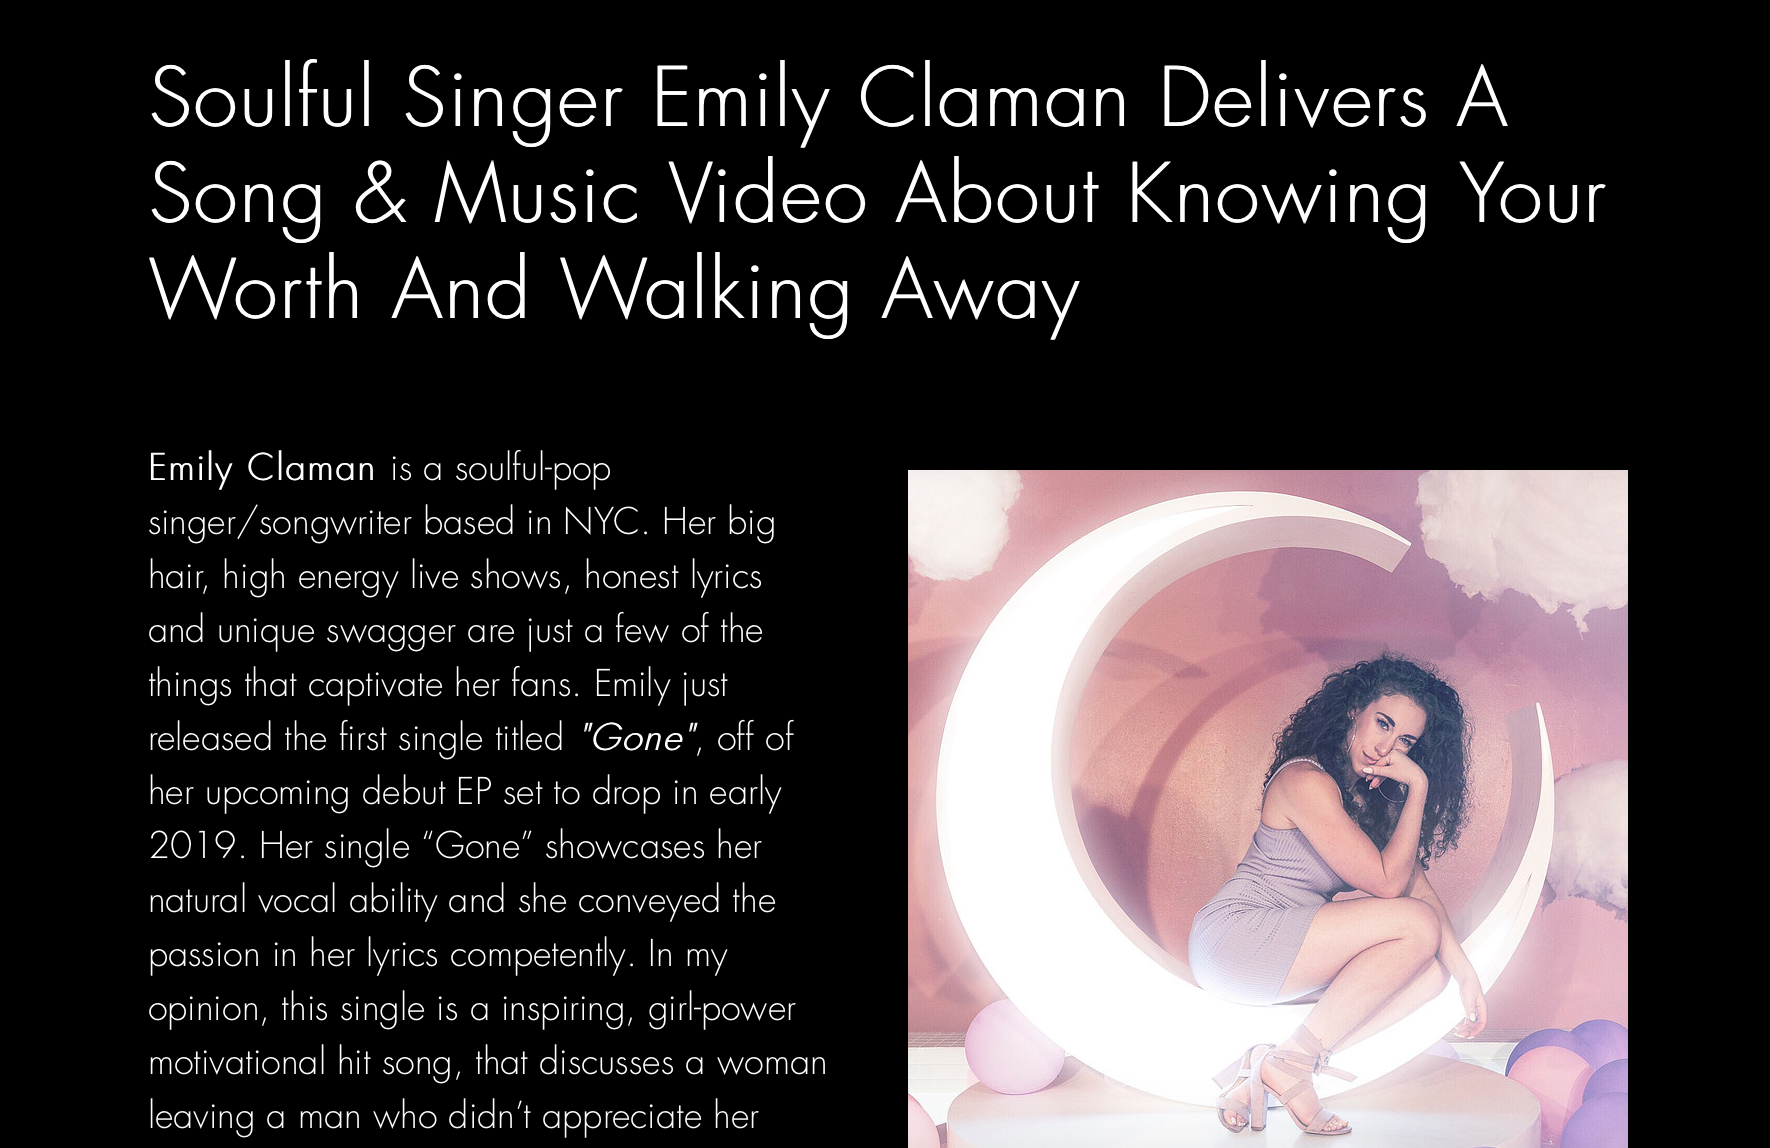 BUZZMUSIC - https://www.buzz-music.com/blog/soulful-singer-emily-claman-delivers-a-song-music-video-about-knowing-your-worth-and-walking-away?fbclid=IwAR11E8GsoSEGoOdMdGPisfy_5yxYaLLqP5L9OsEwi6xTTQA2ZGuK9Ctl1UA